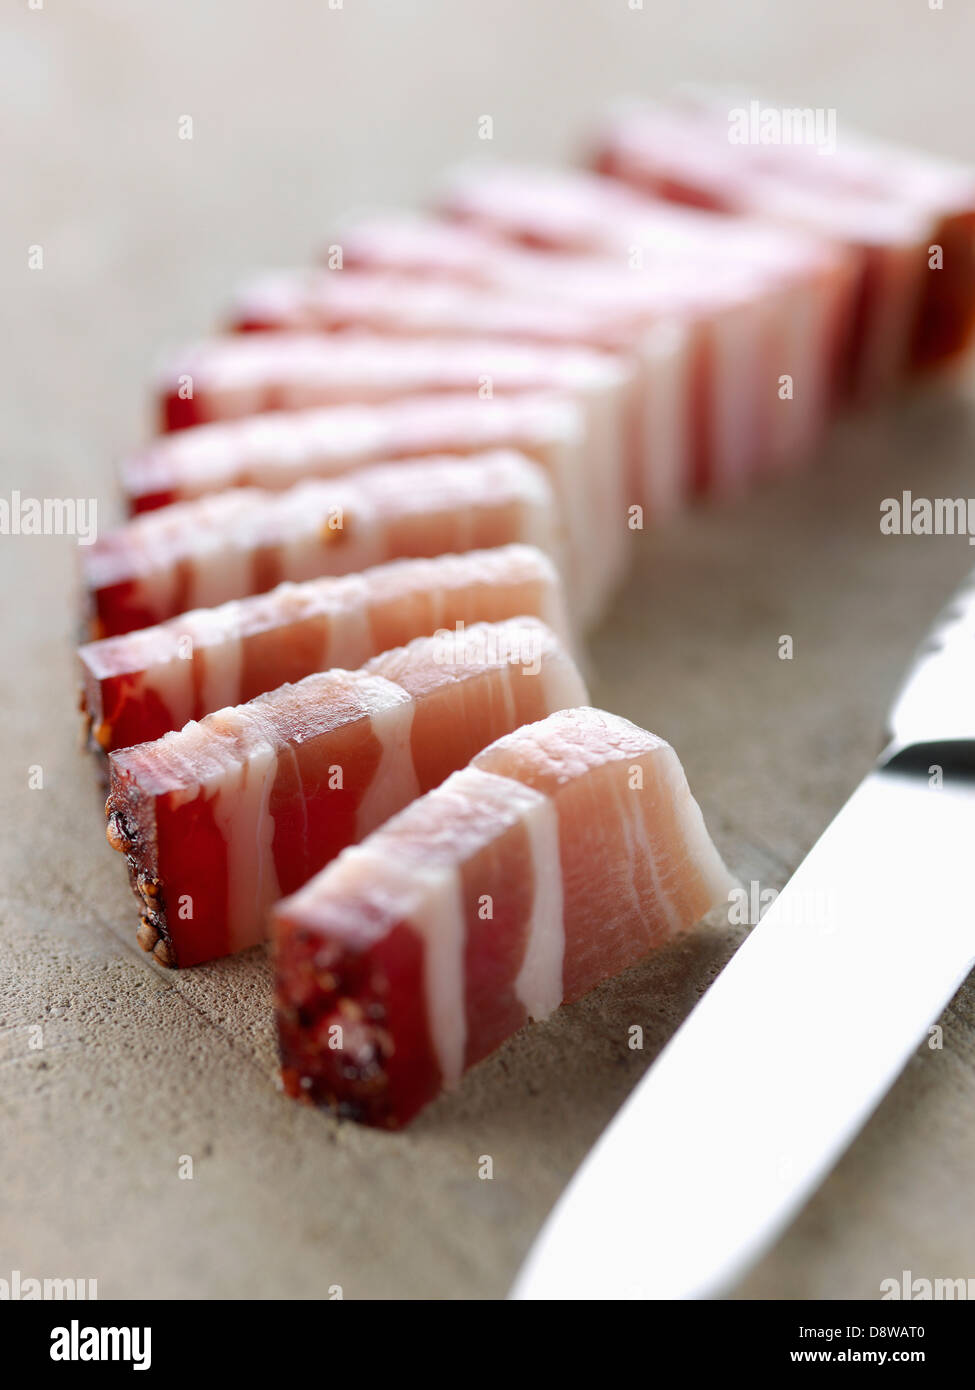 Dicing streaky bacon - Stock Image